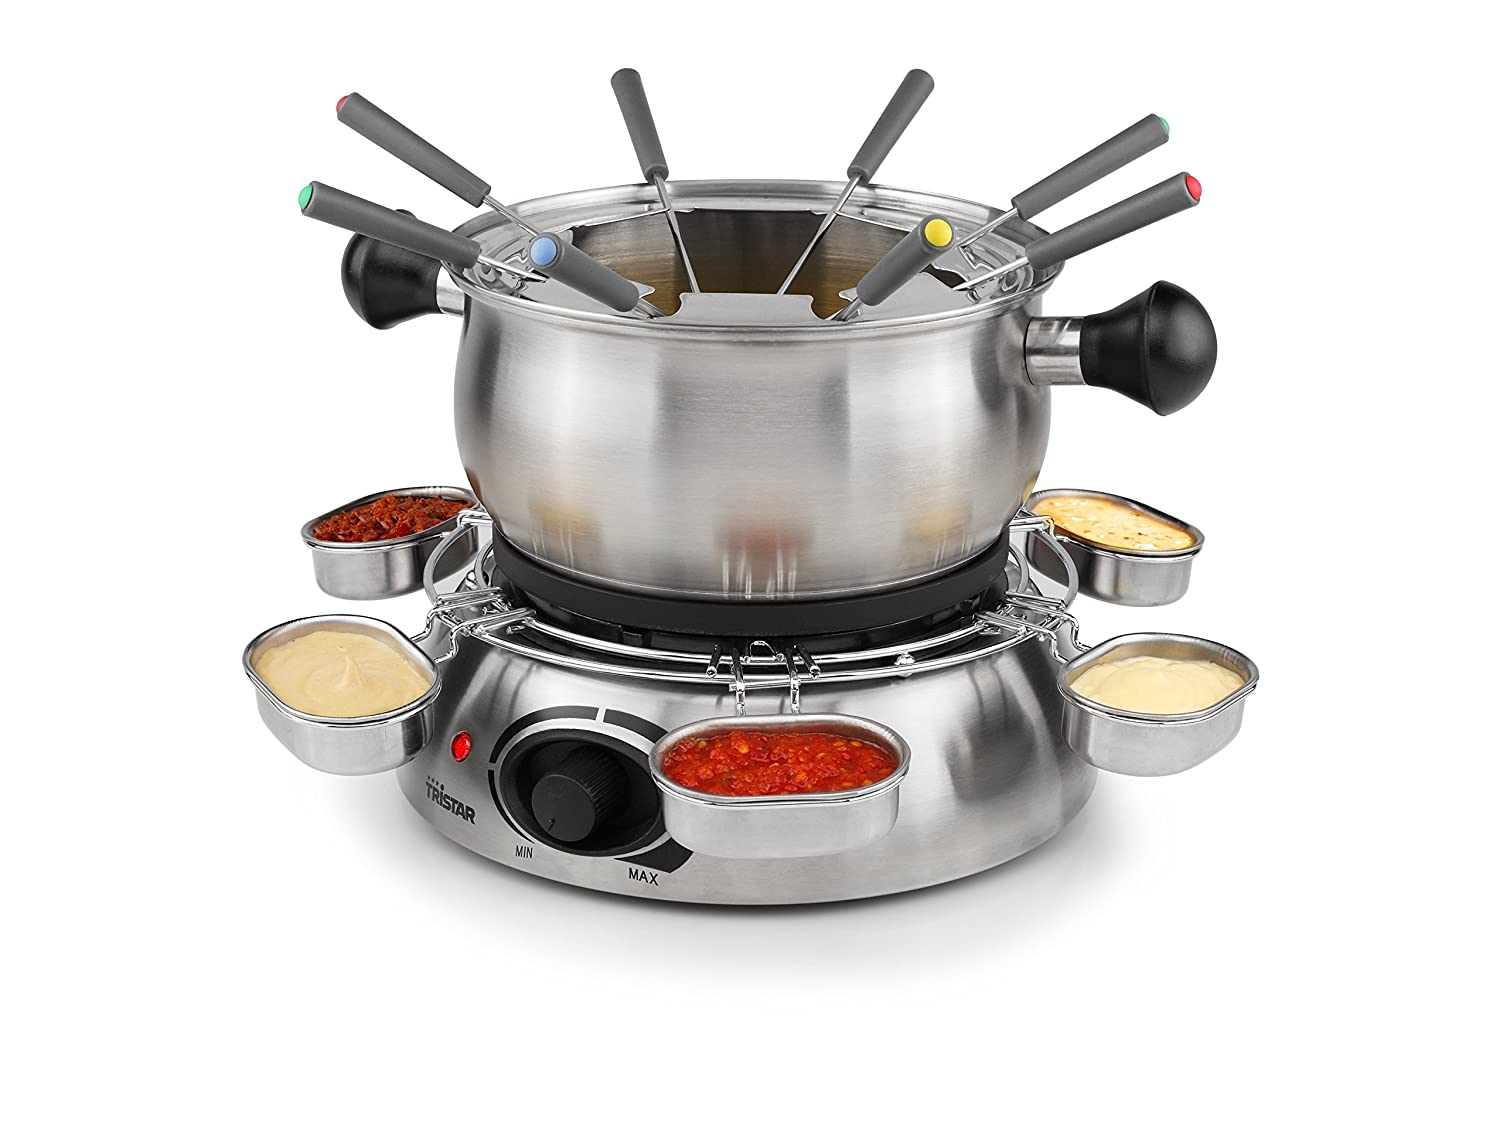 Tristar Stainless Steel Housing Fondue Sauce Ring with 6 Cups, Black FO-1100